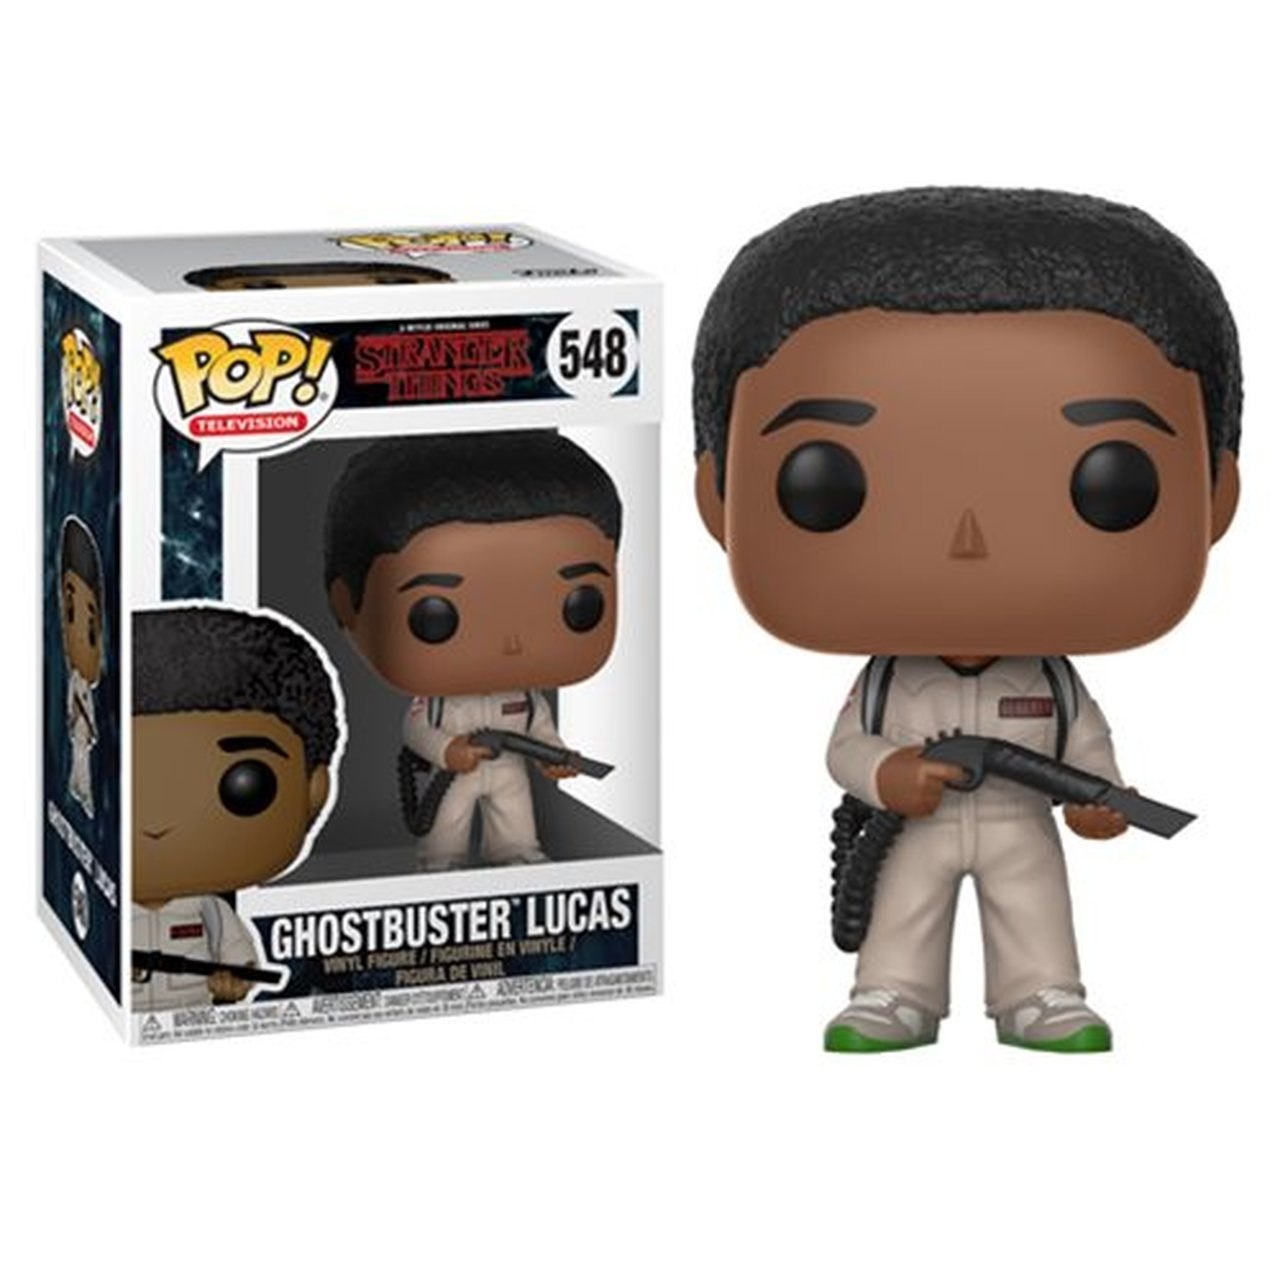 FUNKO POP GHOSTBUSTER LUCAS #548 STANGER THINGS CALEB McLAUGHLIN